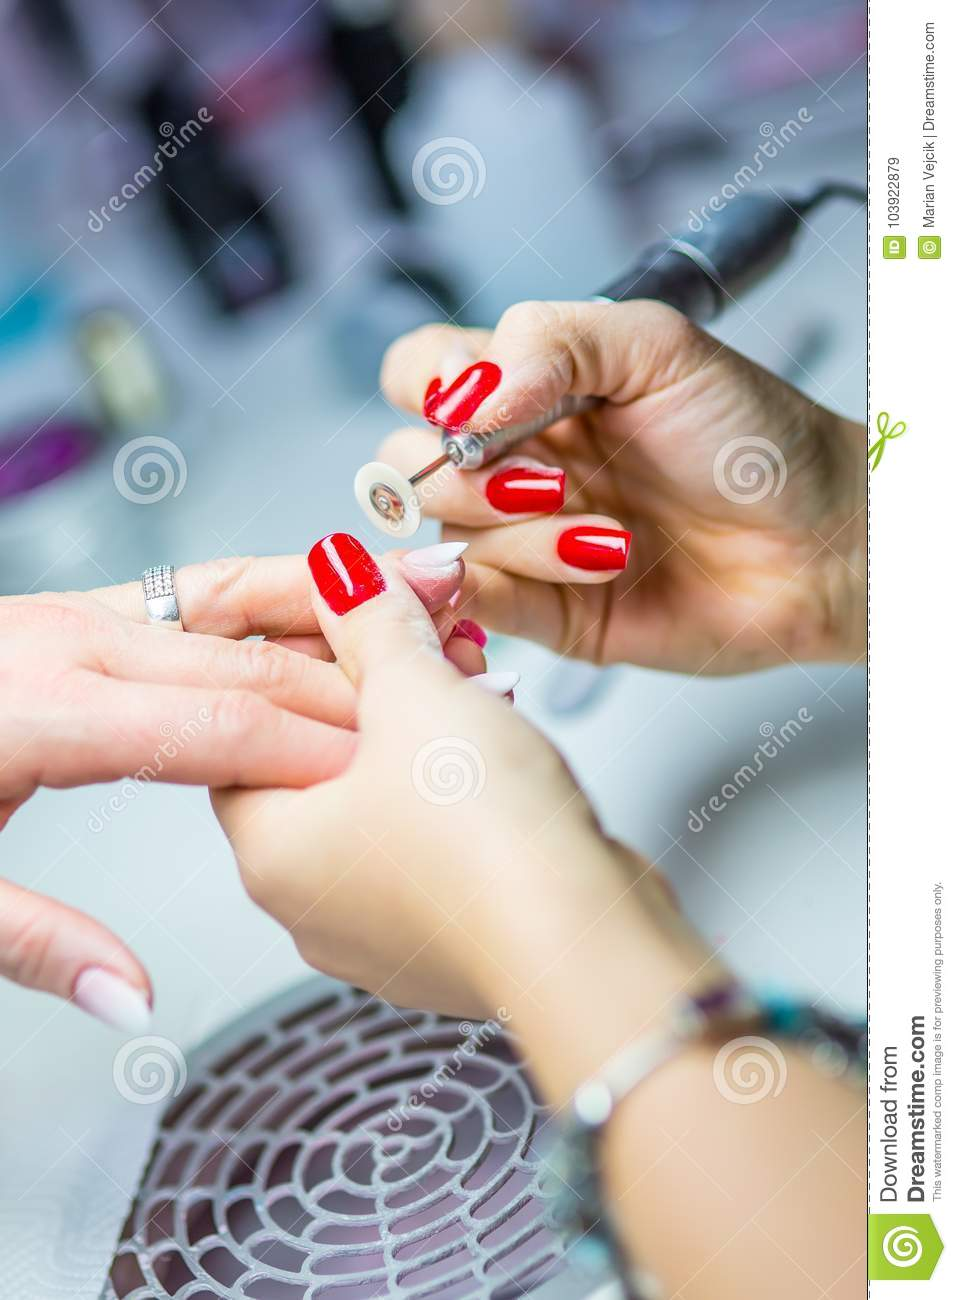 Nail Care And Manicure. Nail Care And The Techniques Of Gel Nail ...